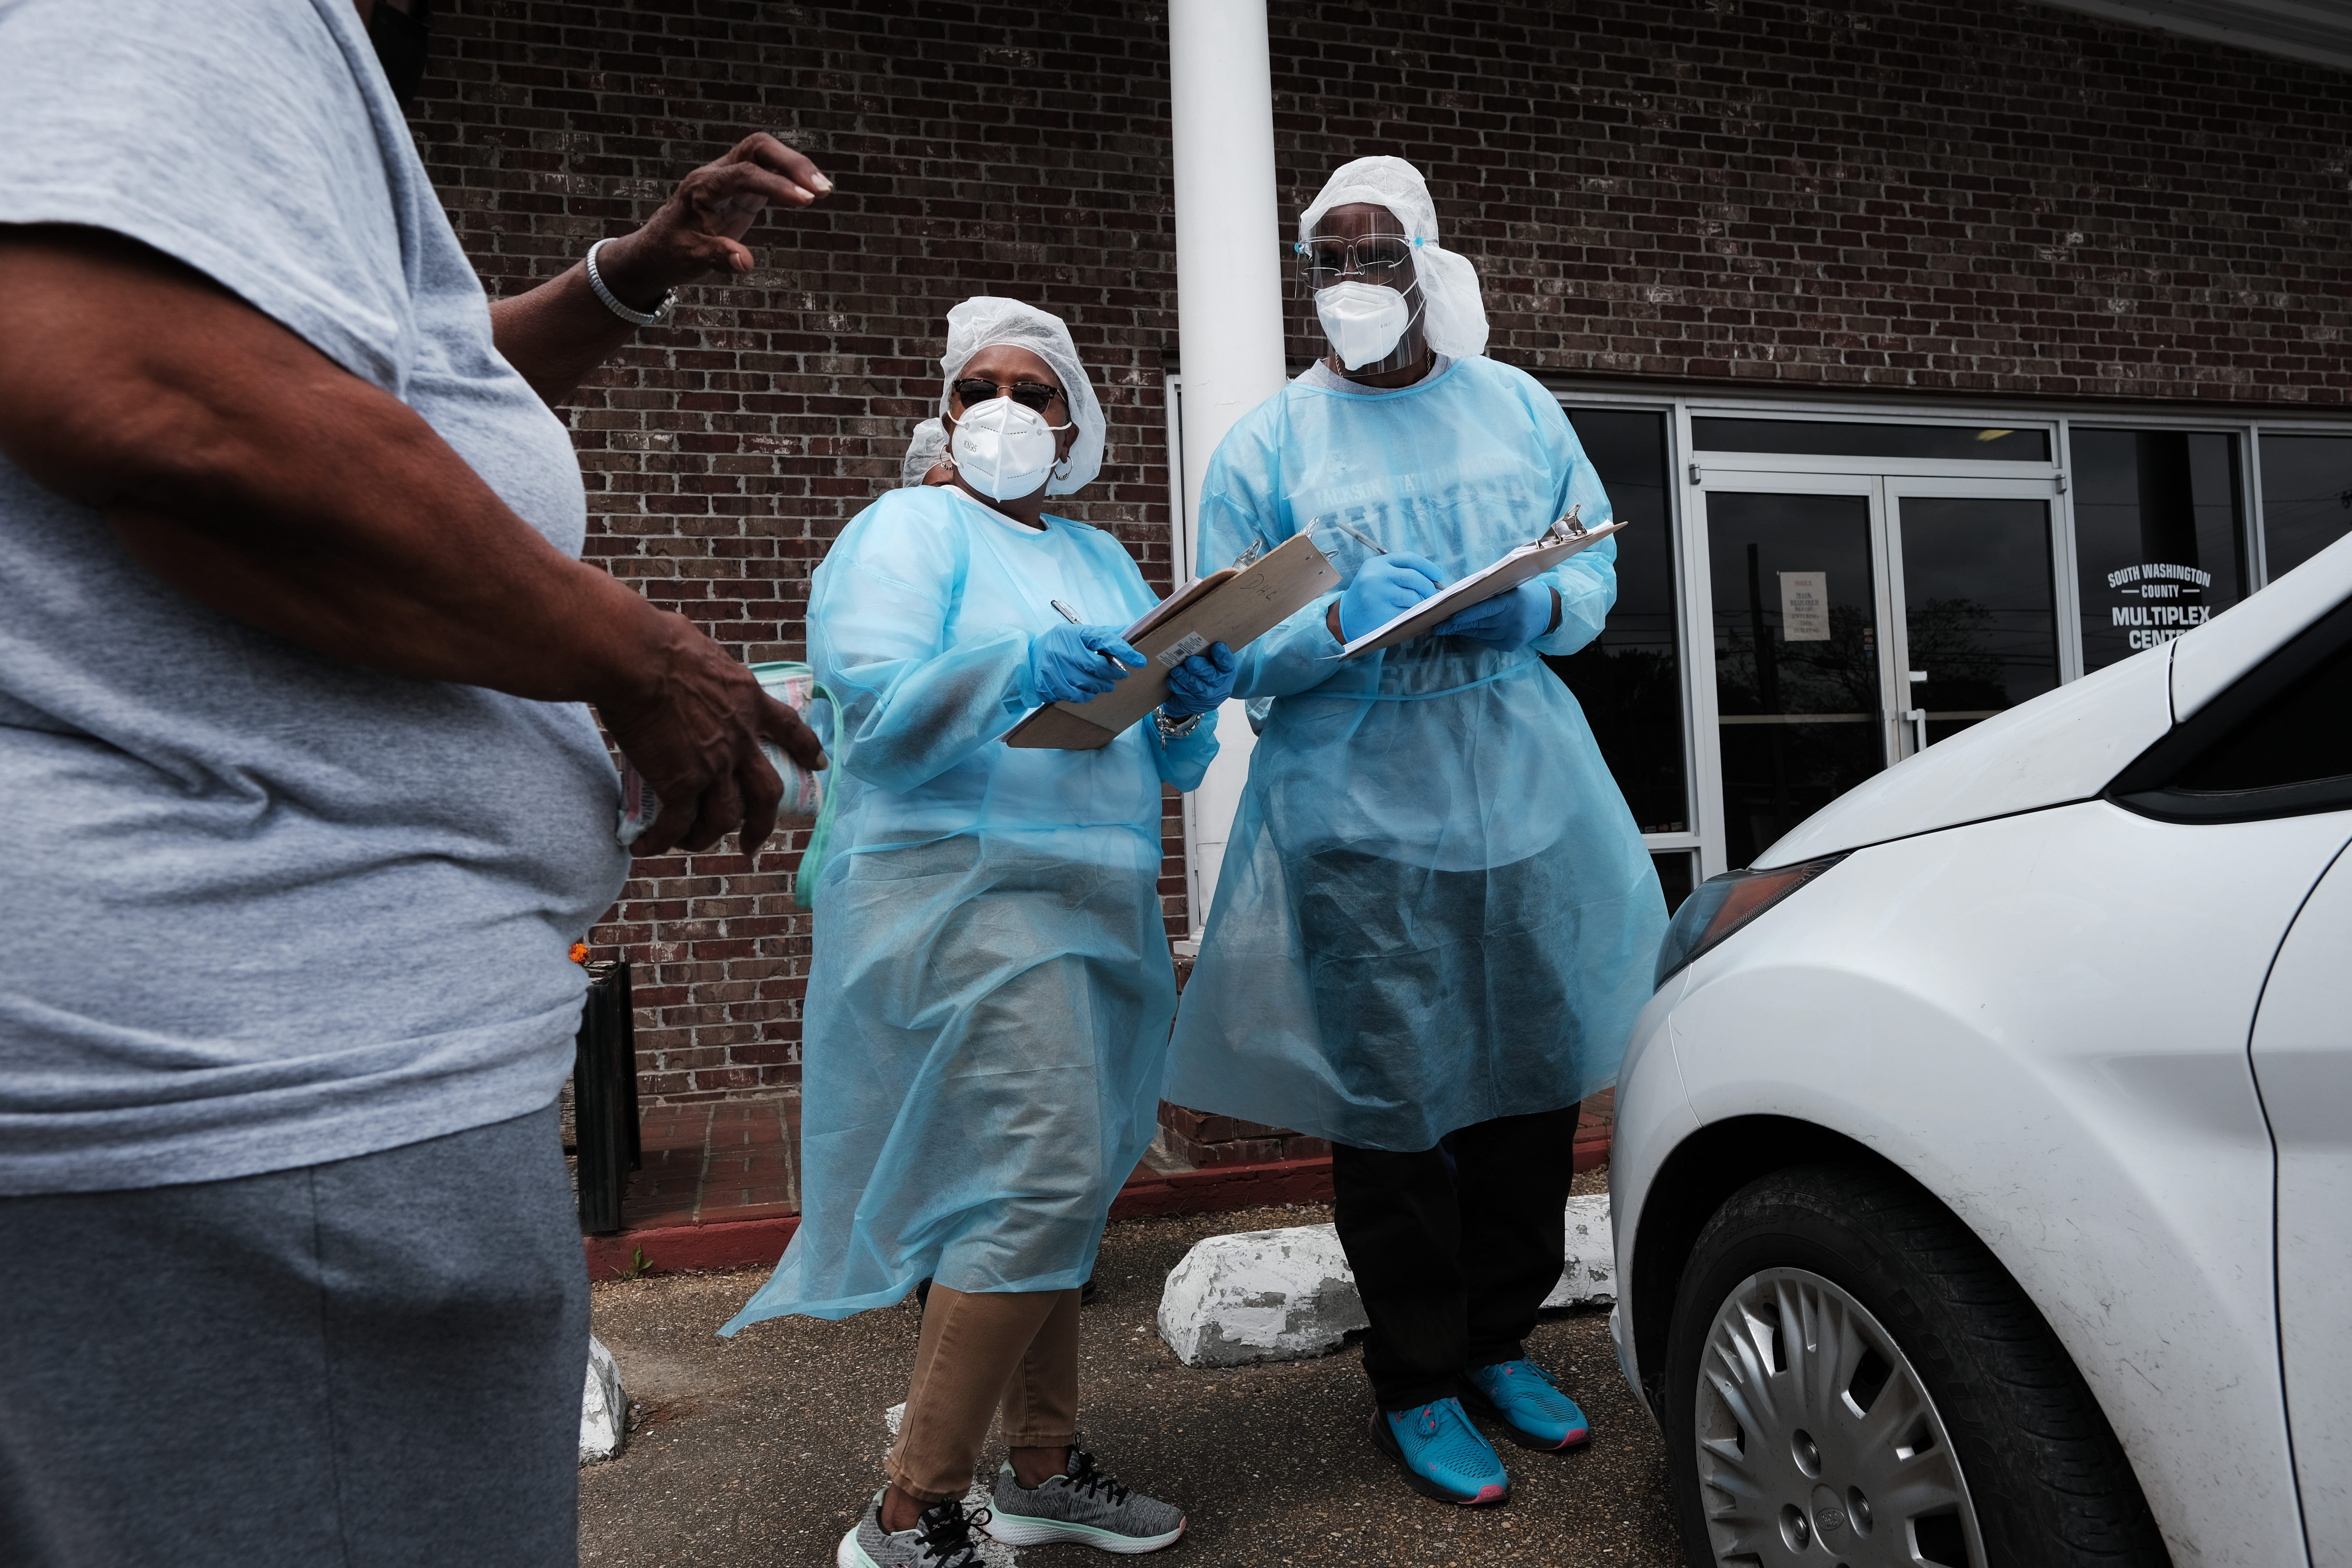 Medical workers with Delta Health Center wait to vaccinate people at a pop-up COVID-19 vaccination clinic April 27 in the rural community of Hollandale, Miss. Mississippi has been working to vaccinate residents in remote areas who may not have access to the internet or transportation.